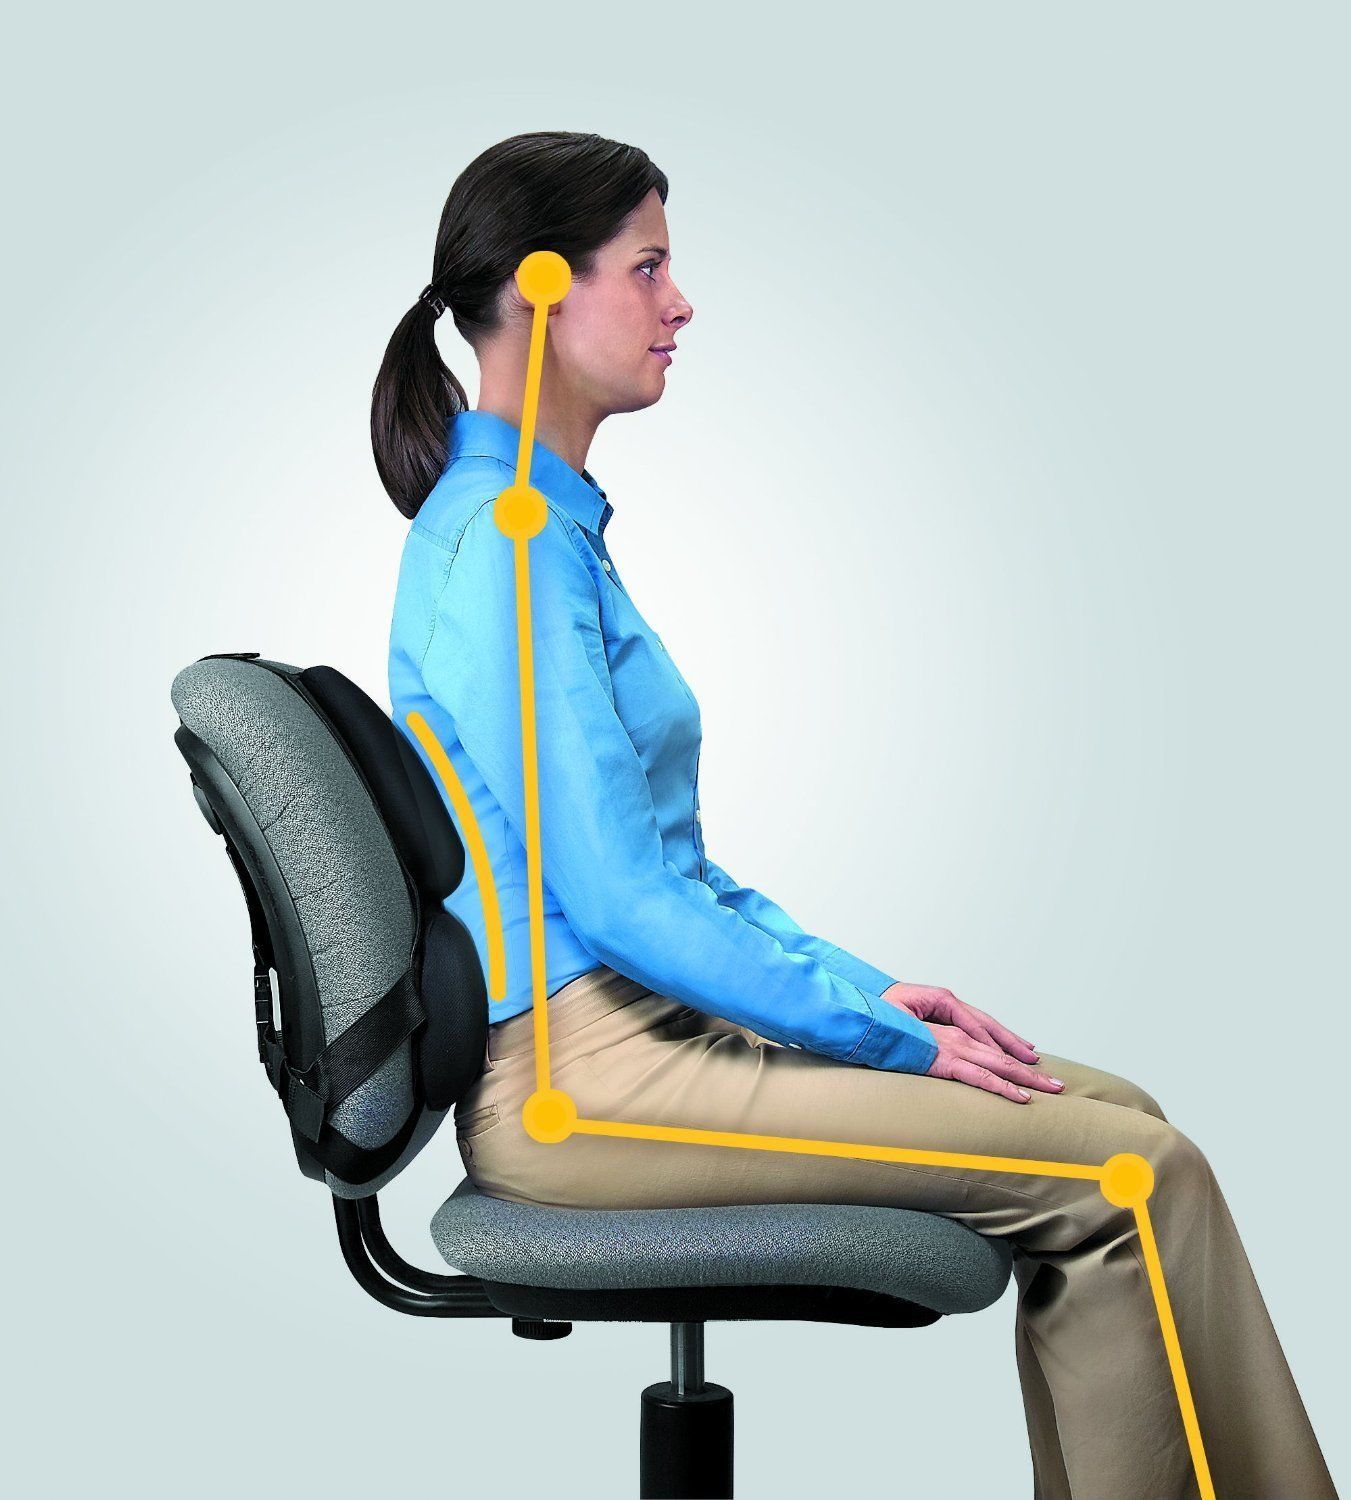 oslo posture chair nz gym ball dubai strap on back support desk ergonomic lumbar office